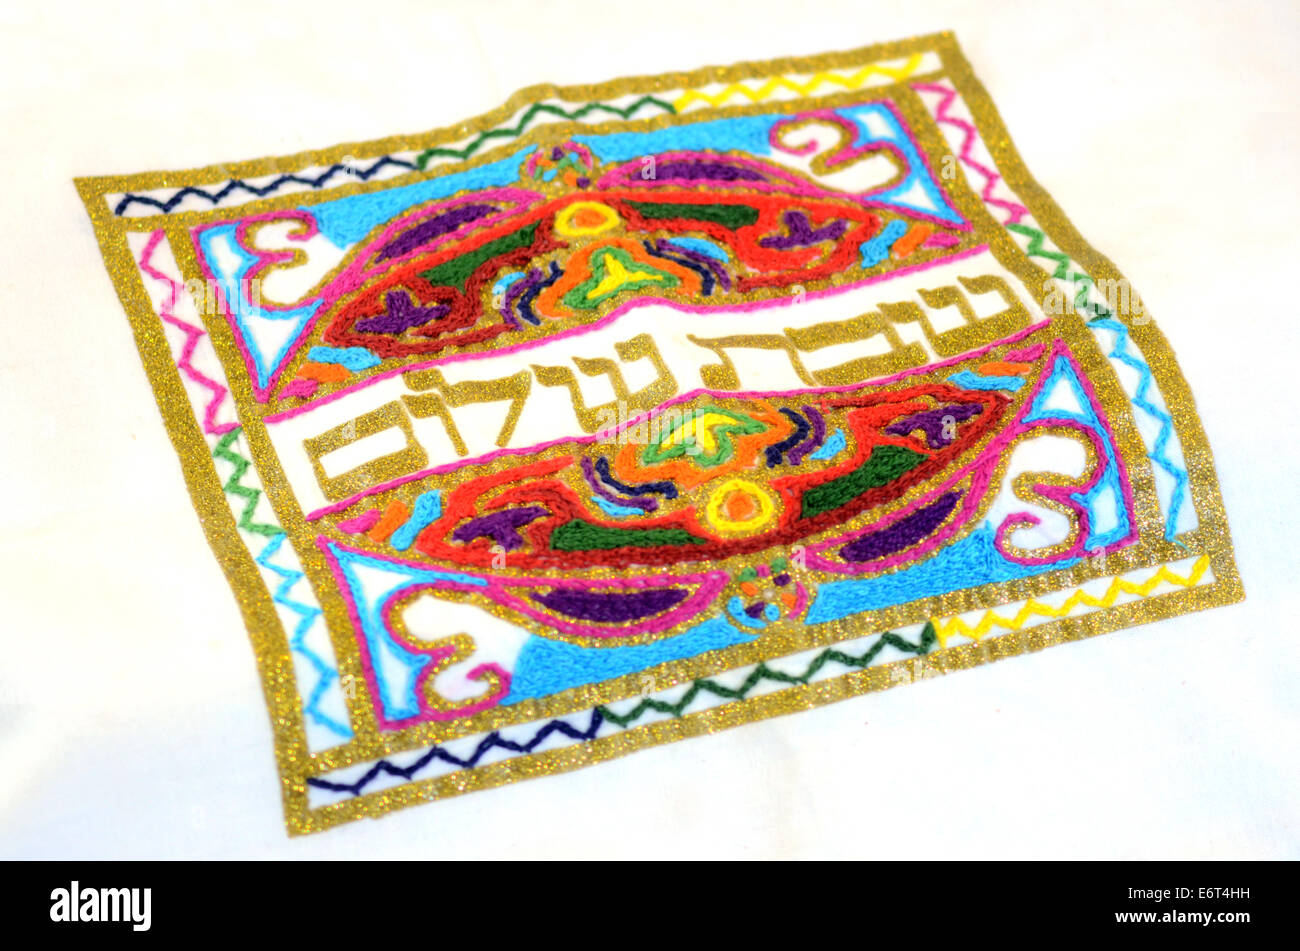 Hand made Shabbat bread cover in hebrew reads, Shabbat shalom. - Stock Image